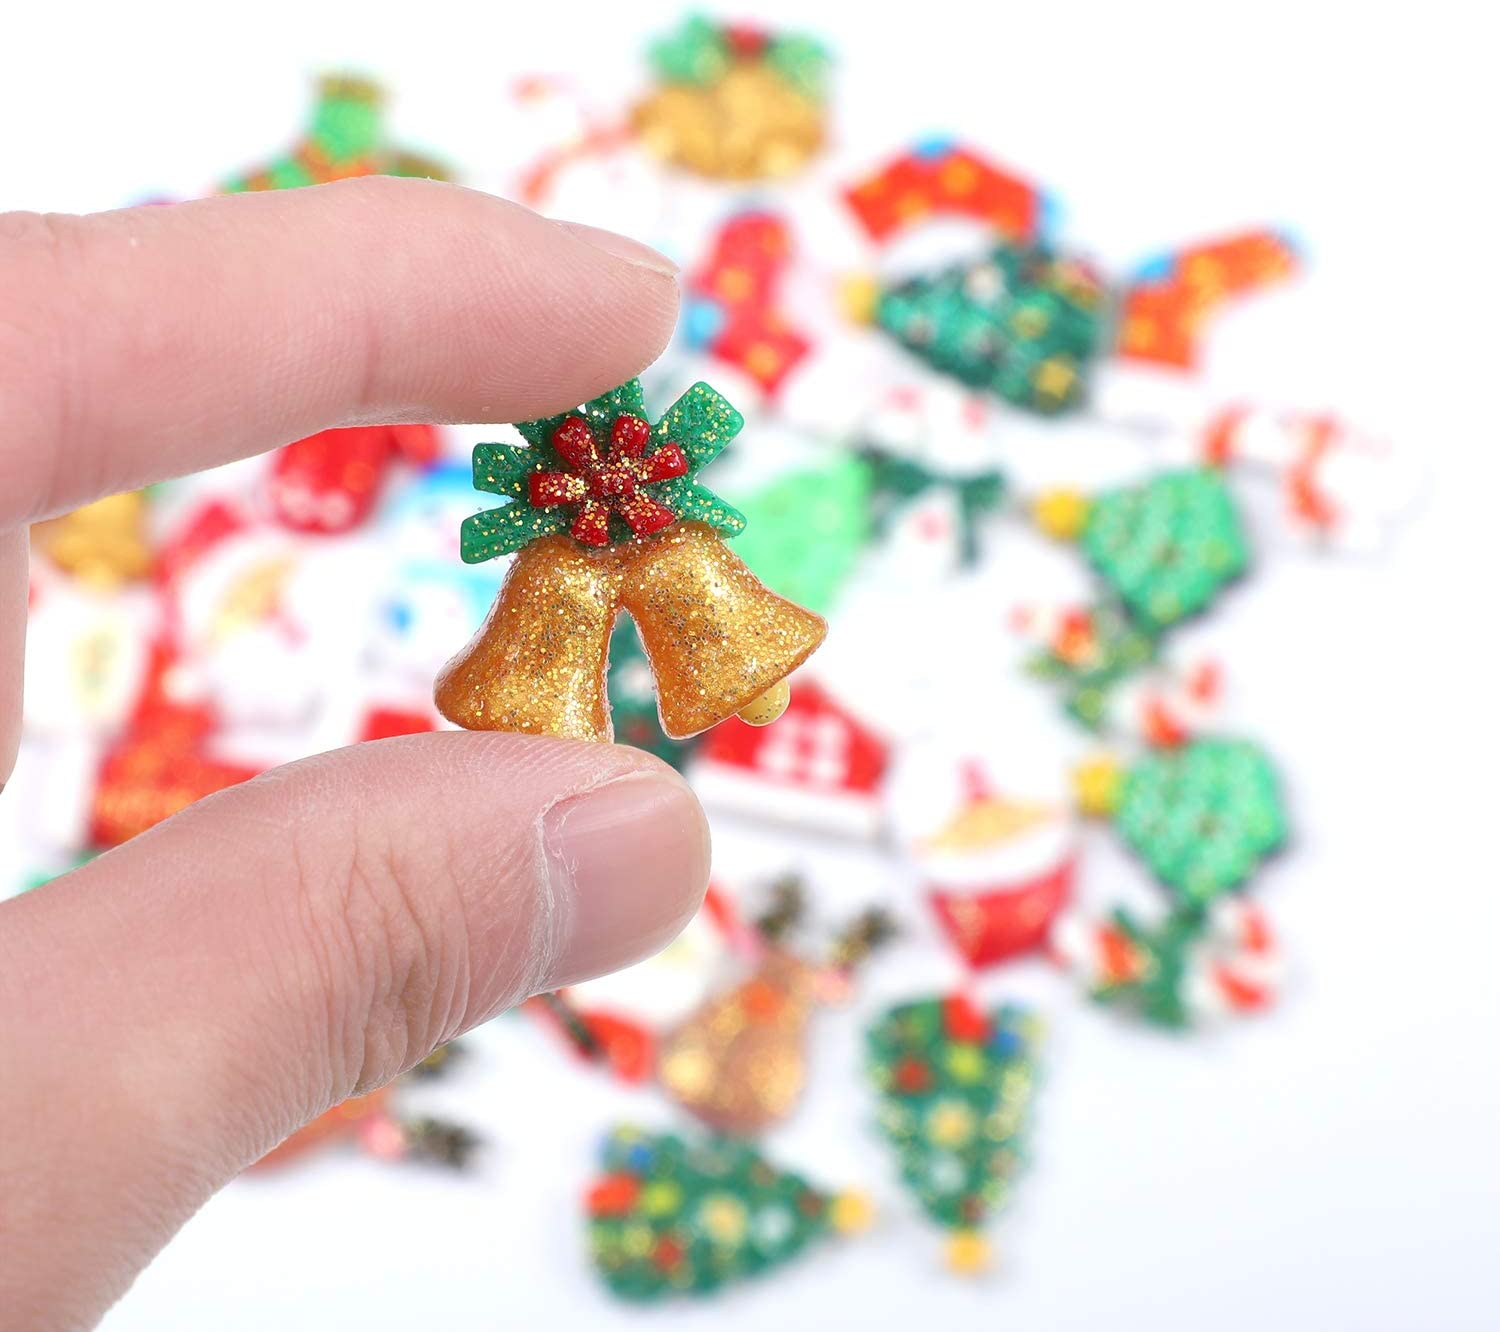 Ruisita 36 Pieces Christmas Glitter Resin Flatback Mix Lots Slices Charms Flat Back Button Christmas Craft Embellishment Assorted Bell Socks Tree with Red Bag for Christmas Ornaments Crafts DIY